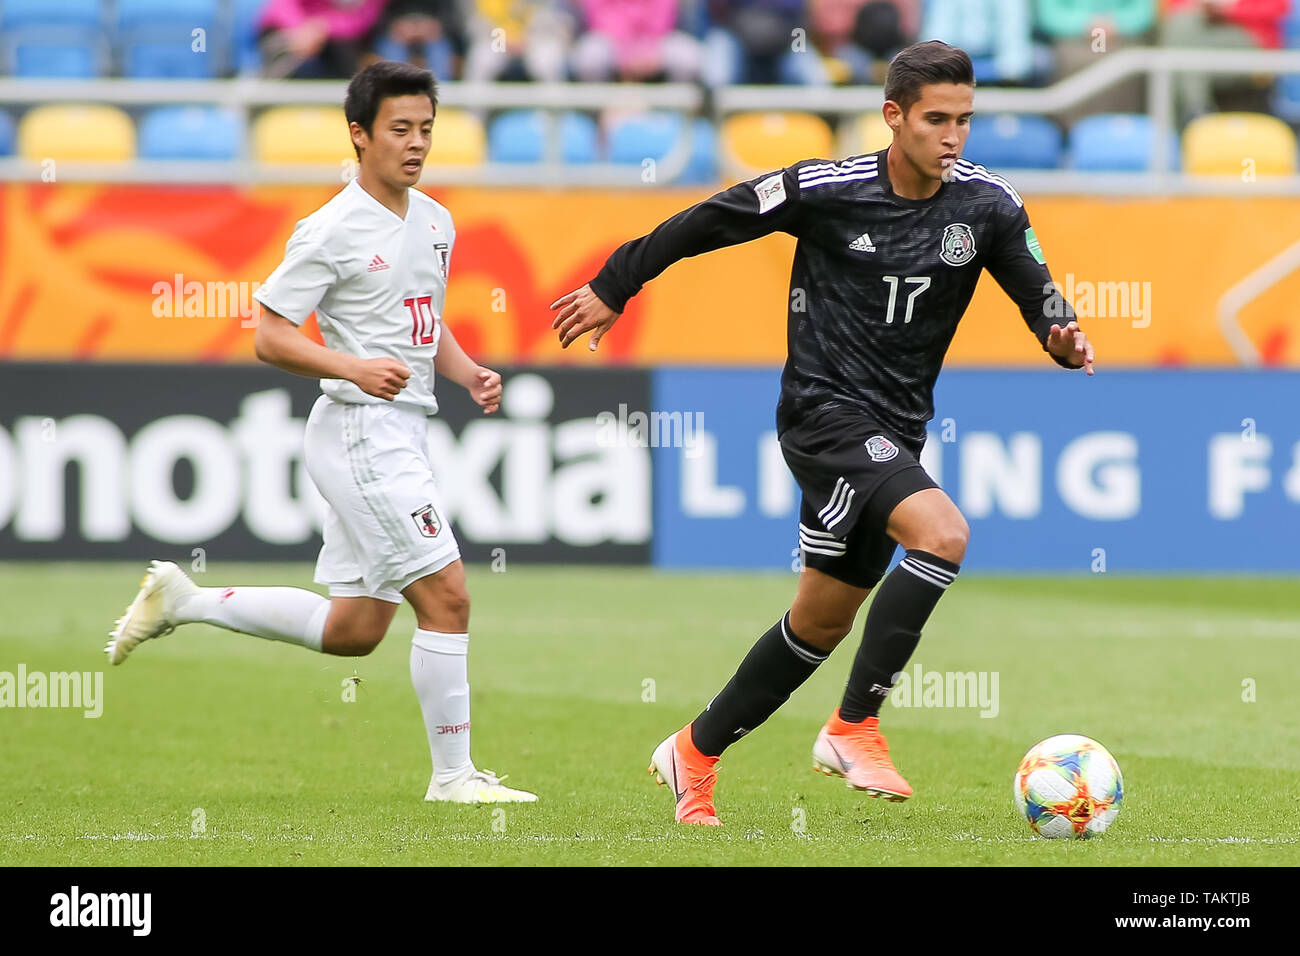 Gdynia Stadium, Gdynia, Poland - 26th May, 2019: Daniel Lopez (R) from Mexico and Mitsuki Saito (L) from Japan  are seen in action during FIFA U-20 World Cup match between Mexico and Japan (GROUP B) in Gdynia. (Final score; Mexico 0:3 Japan) - Stock Image